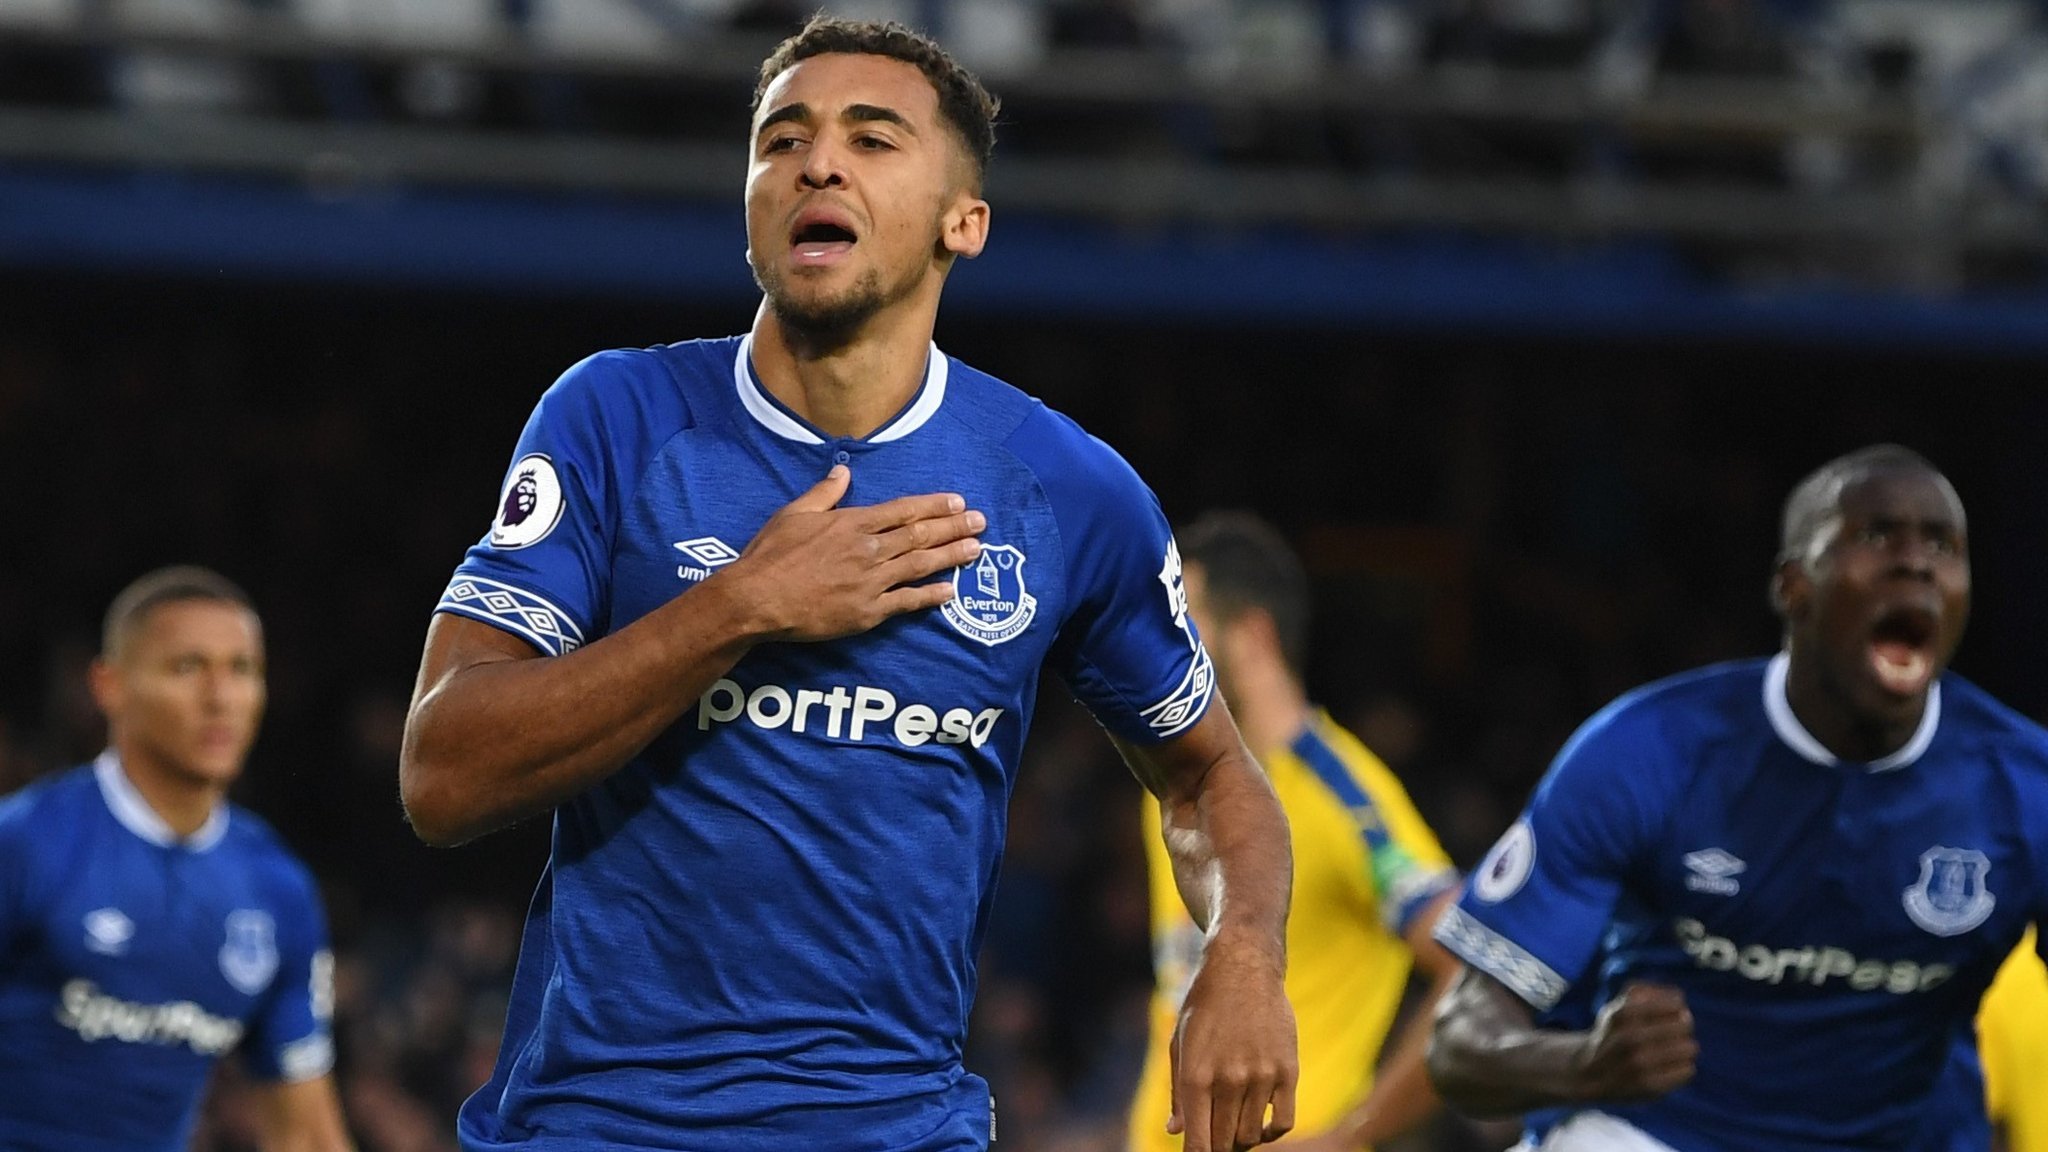 Everton 2-0 Crystal Palace: Hosts score twice in last three minutes